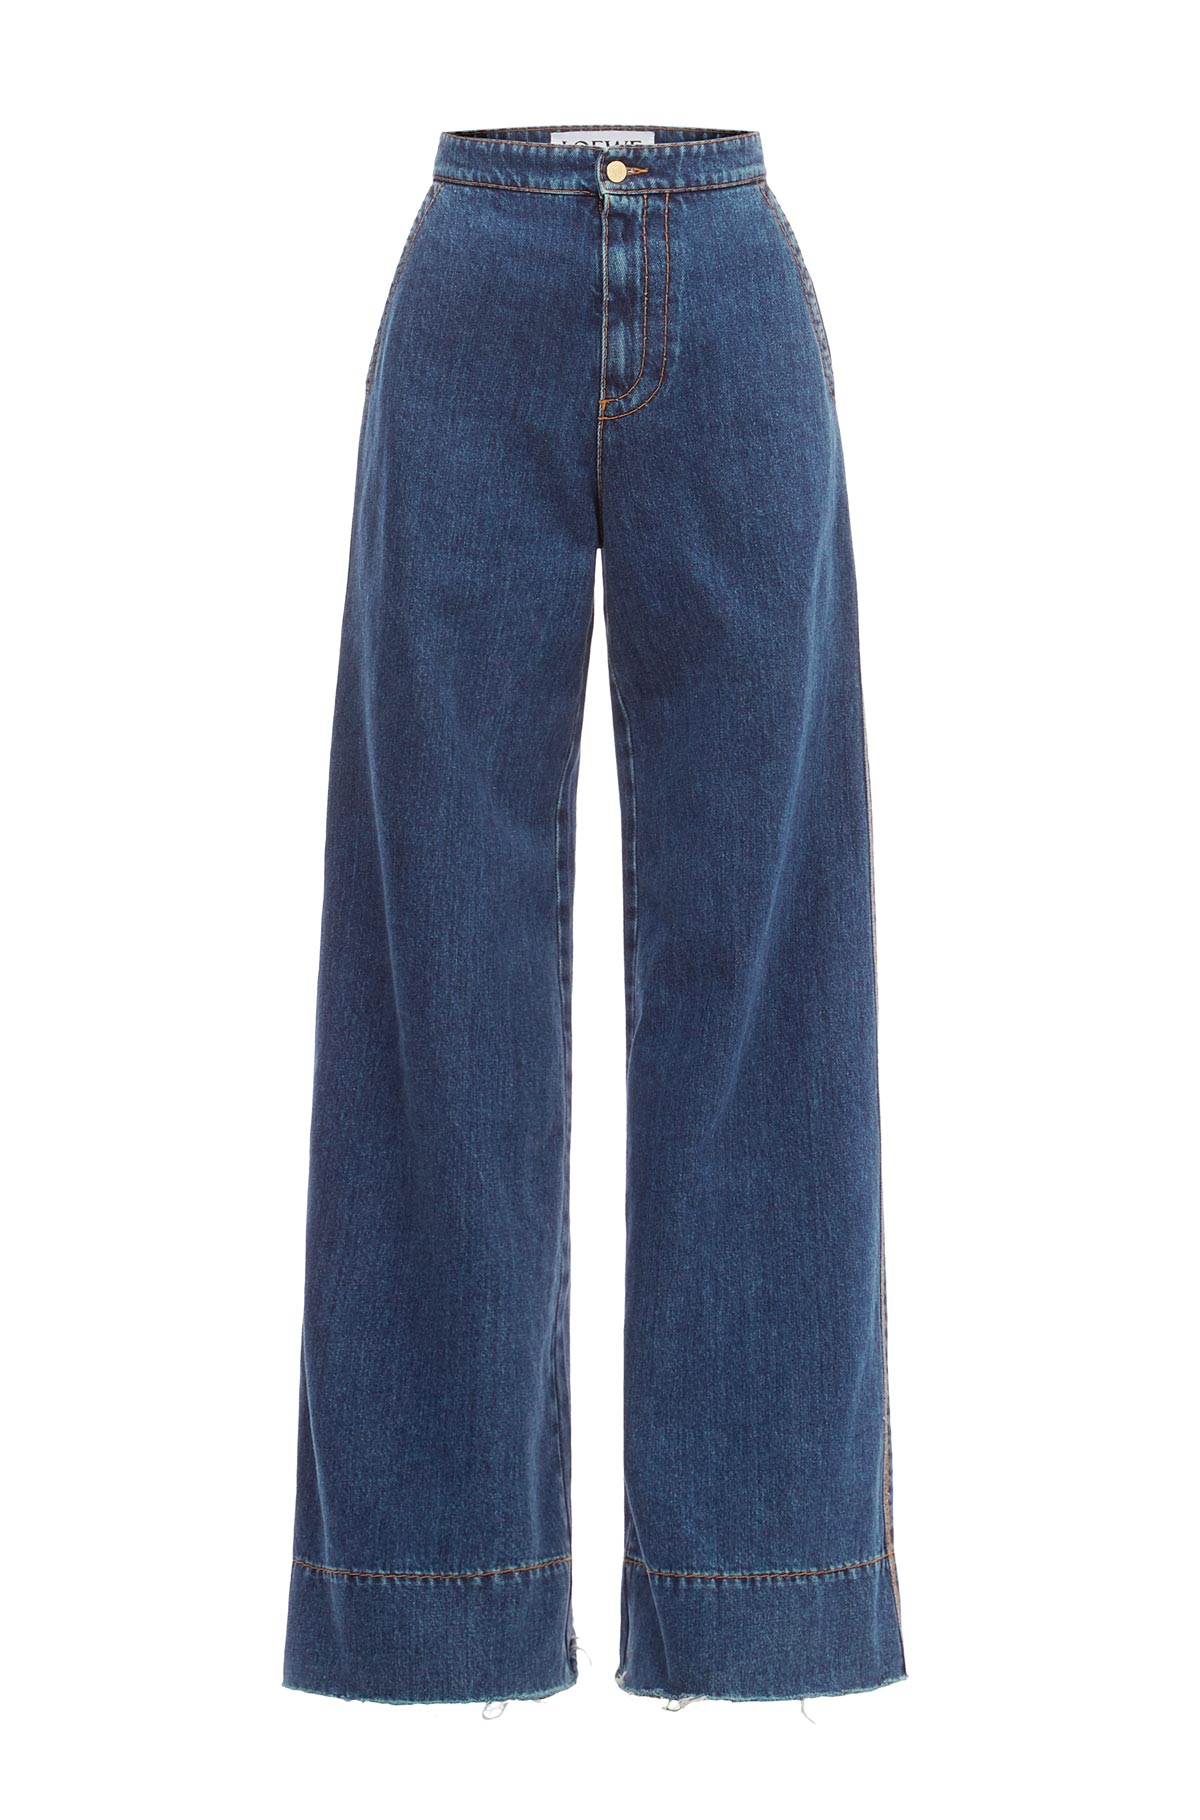 Cheap LOEWE Belted Flared Jeans RNYQKS on sale